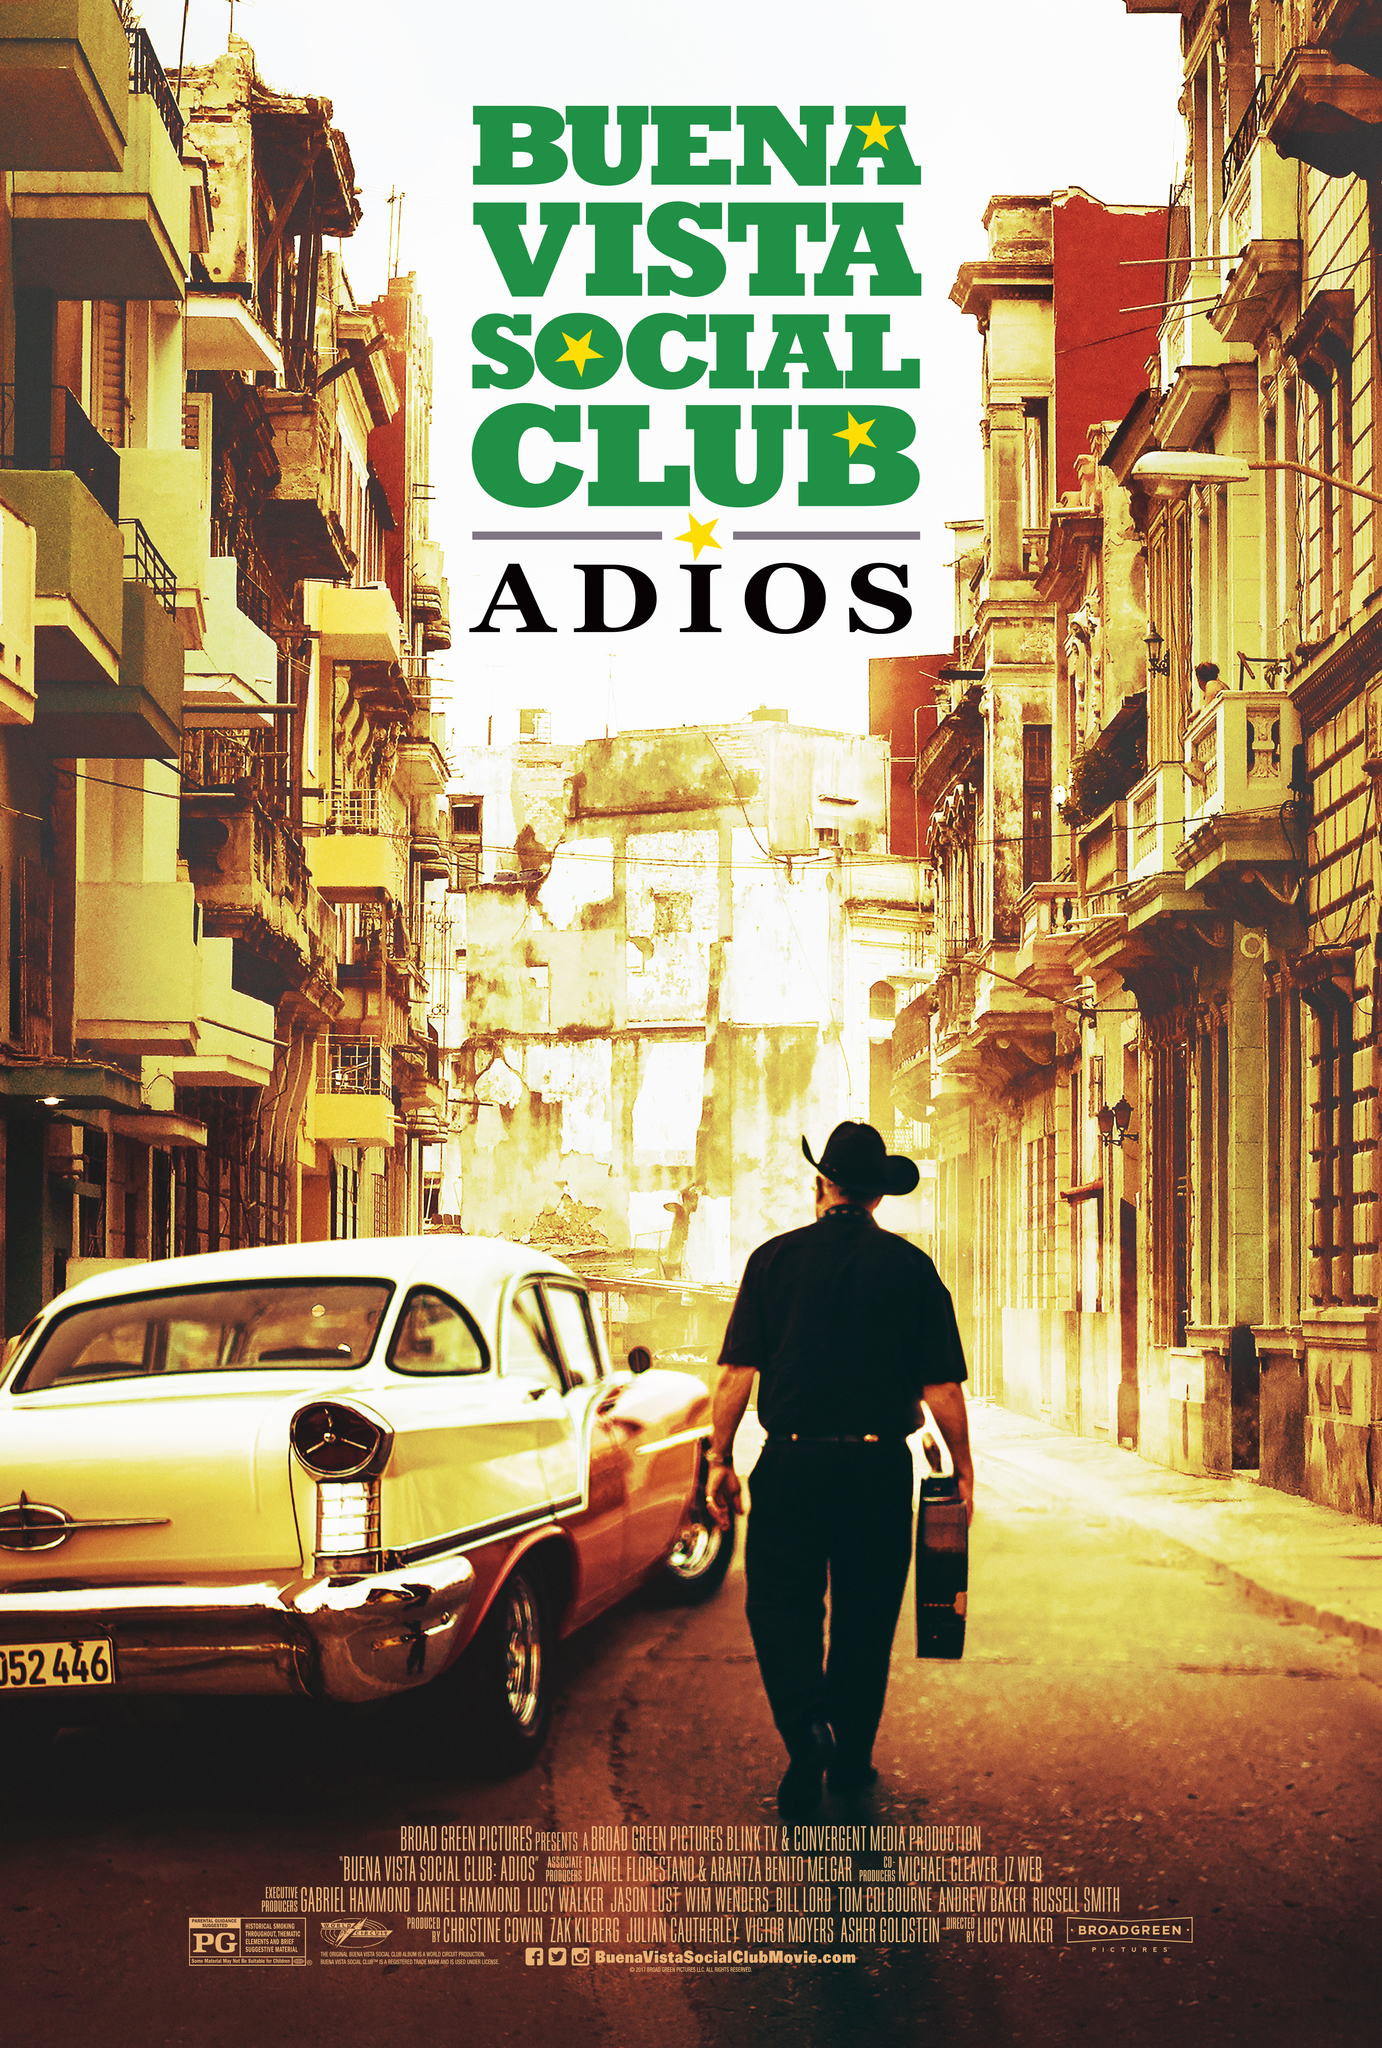 Buena Vista Social Club Adios 2017 Photo Gallery Imdb